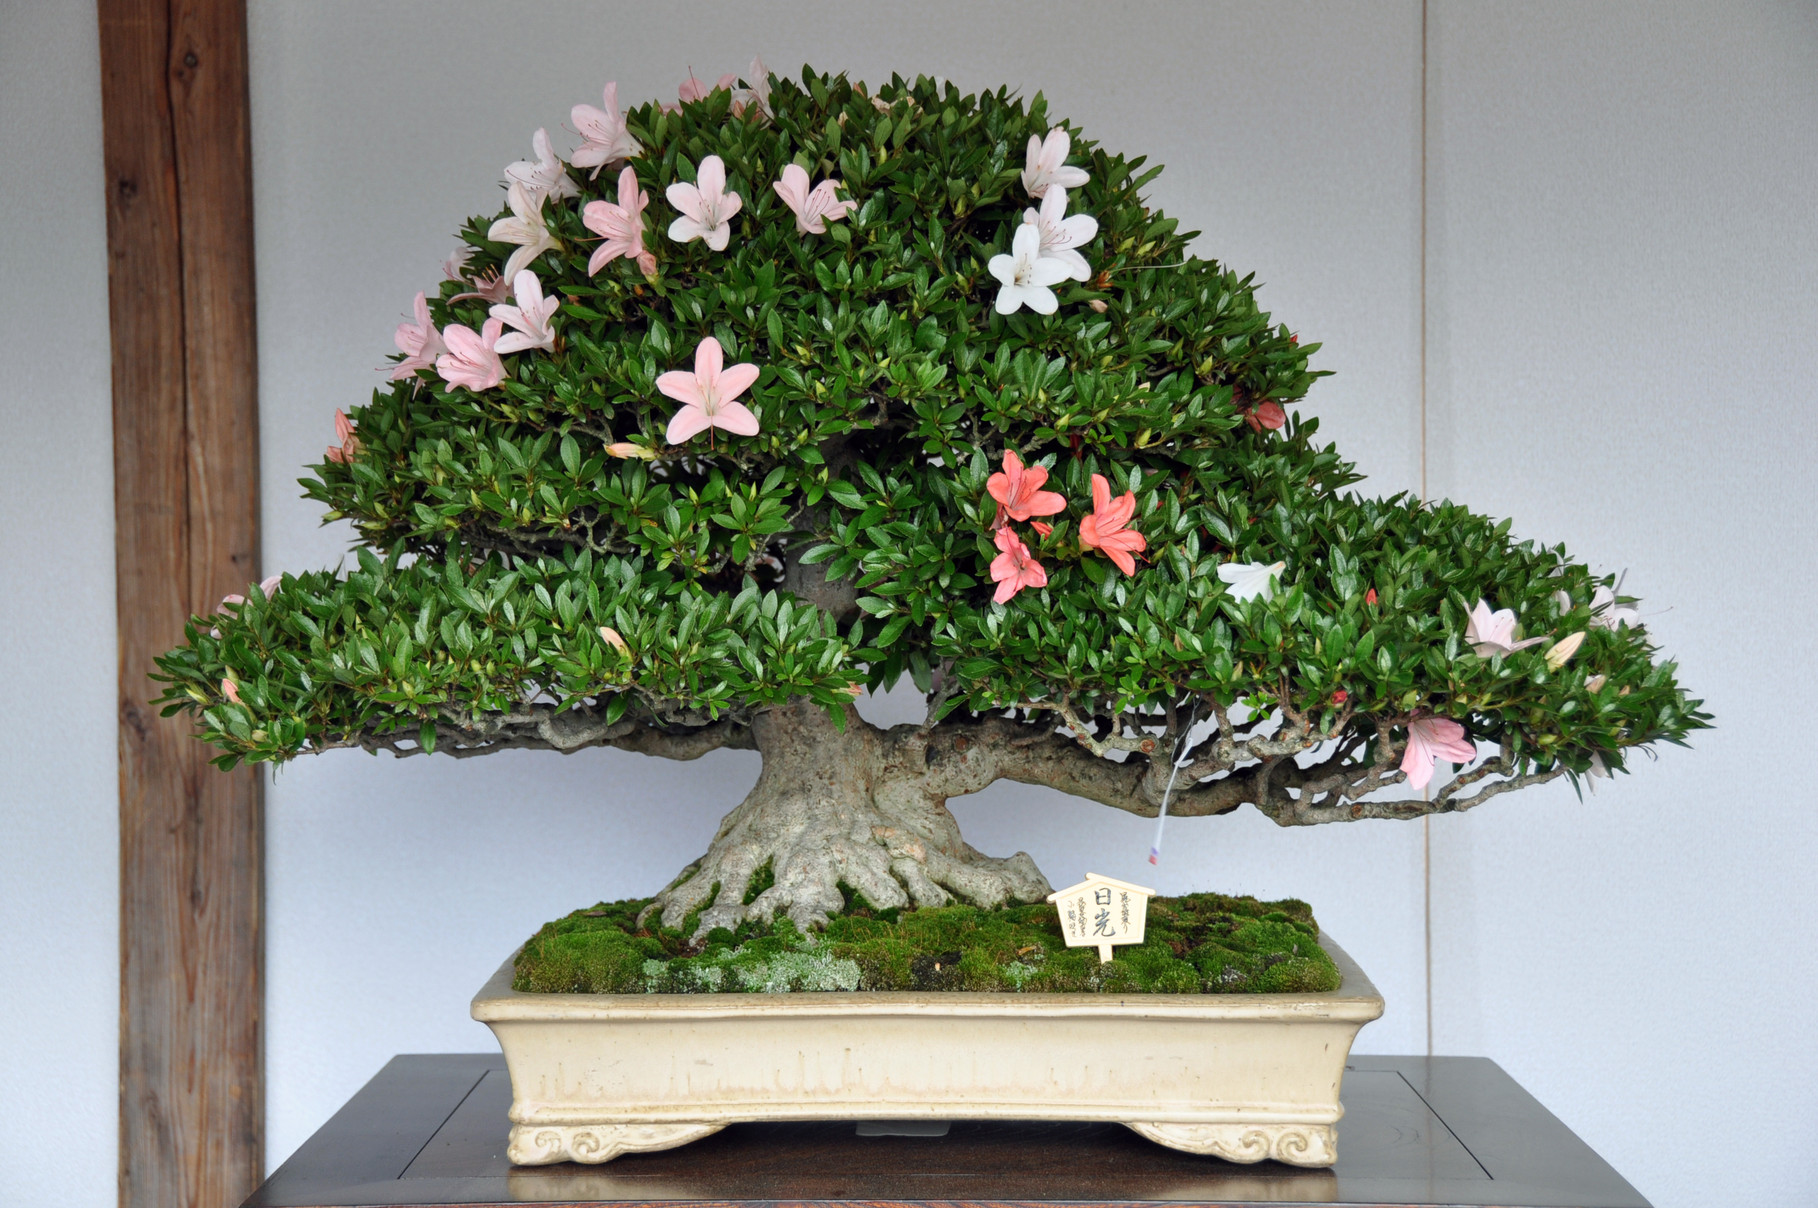 Kanuma Mayor Award, Cultivar Nikko